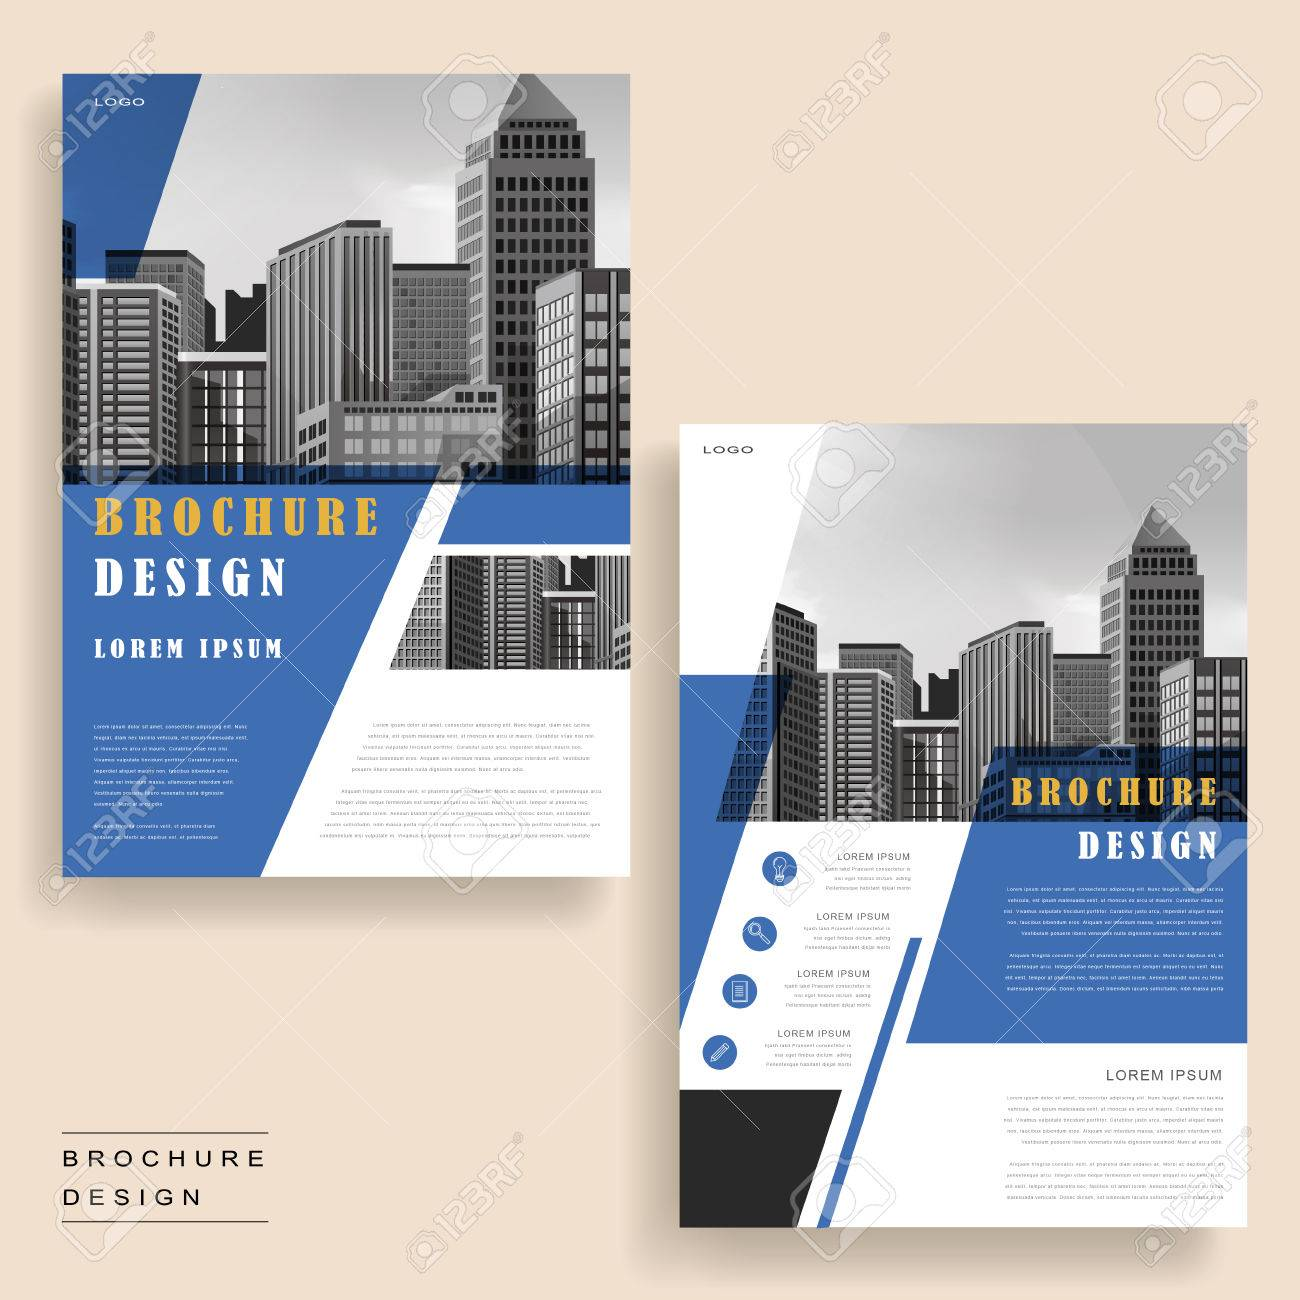 contemporary brochure template design with city landscape and geometric elements stock vector 61525914 - Settlement Brochure Template